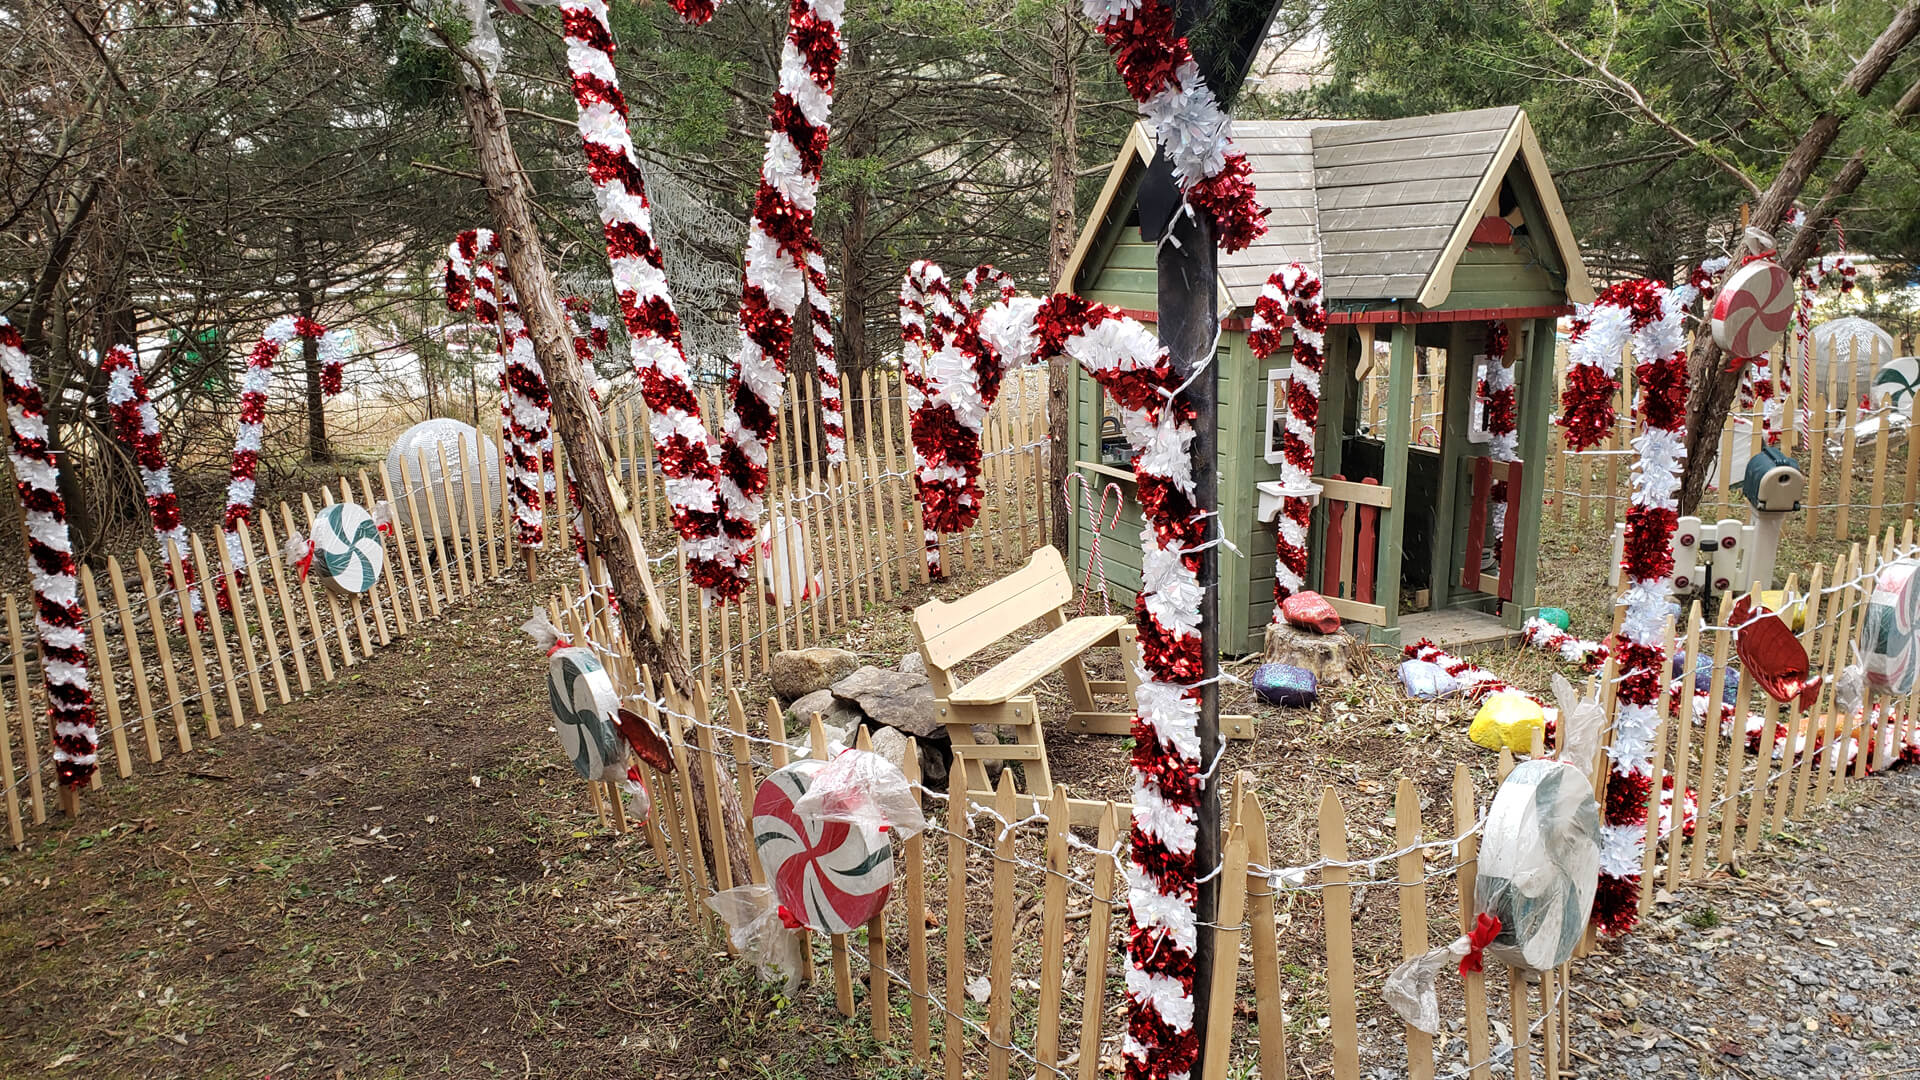 A section of the path through the forest decorated with candy canes and peppermint candies, along with a tiny cottage and bench